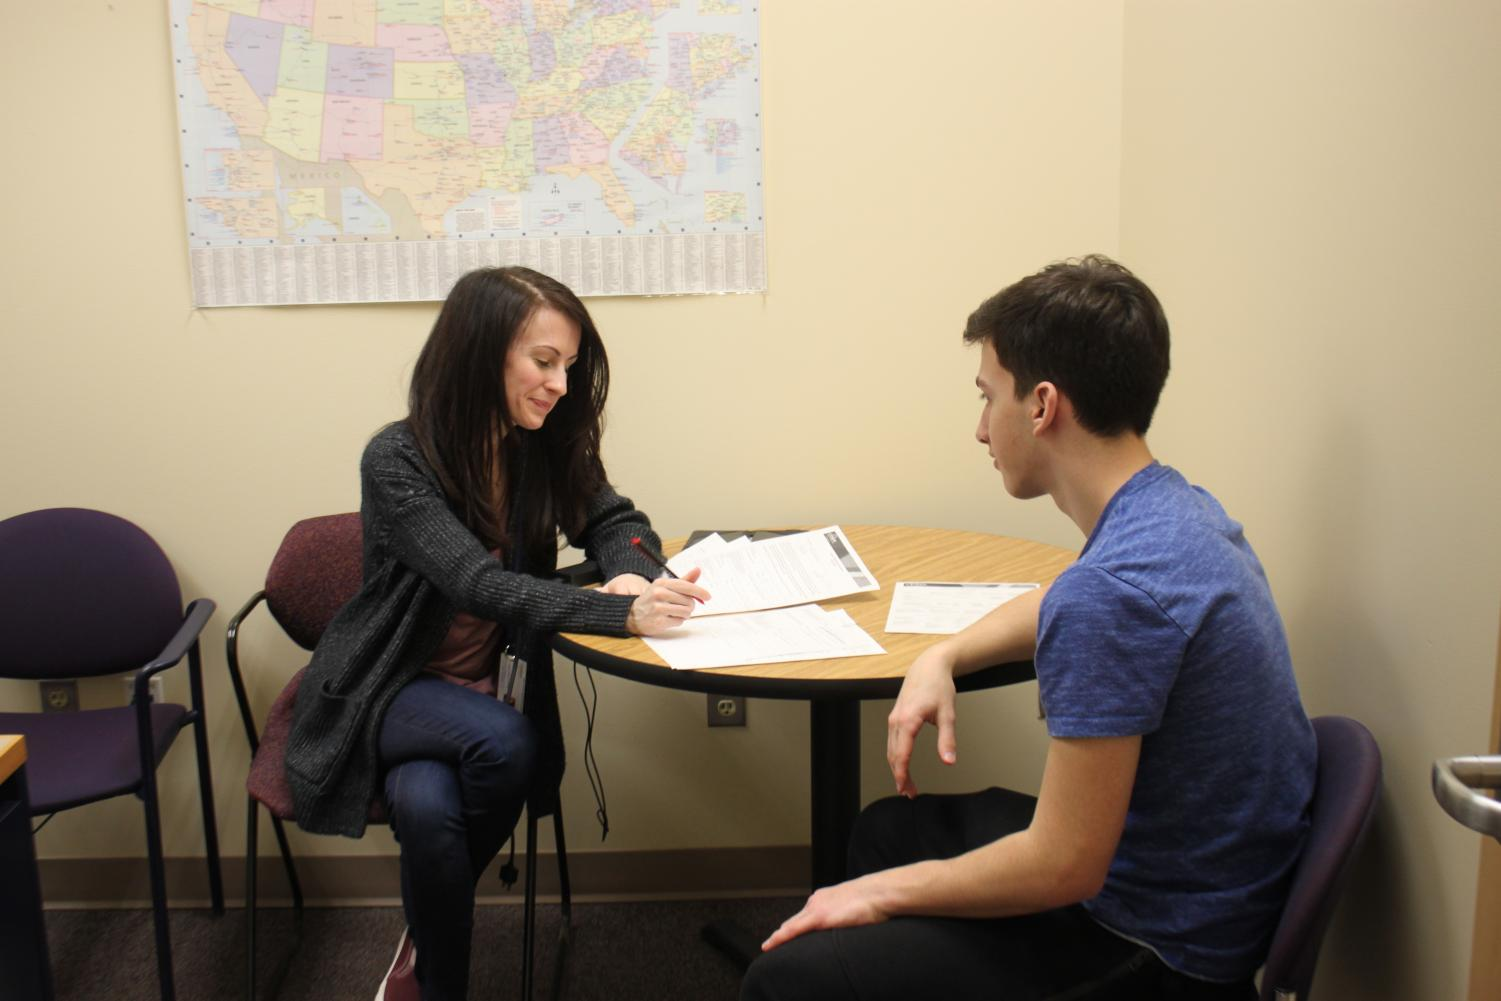 English teacher and college counselor Alison Davison sits down with a student to discuss his course requirements for graduating.